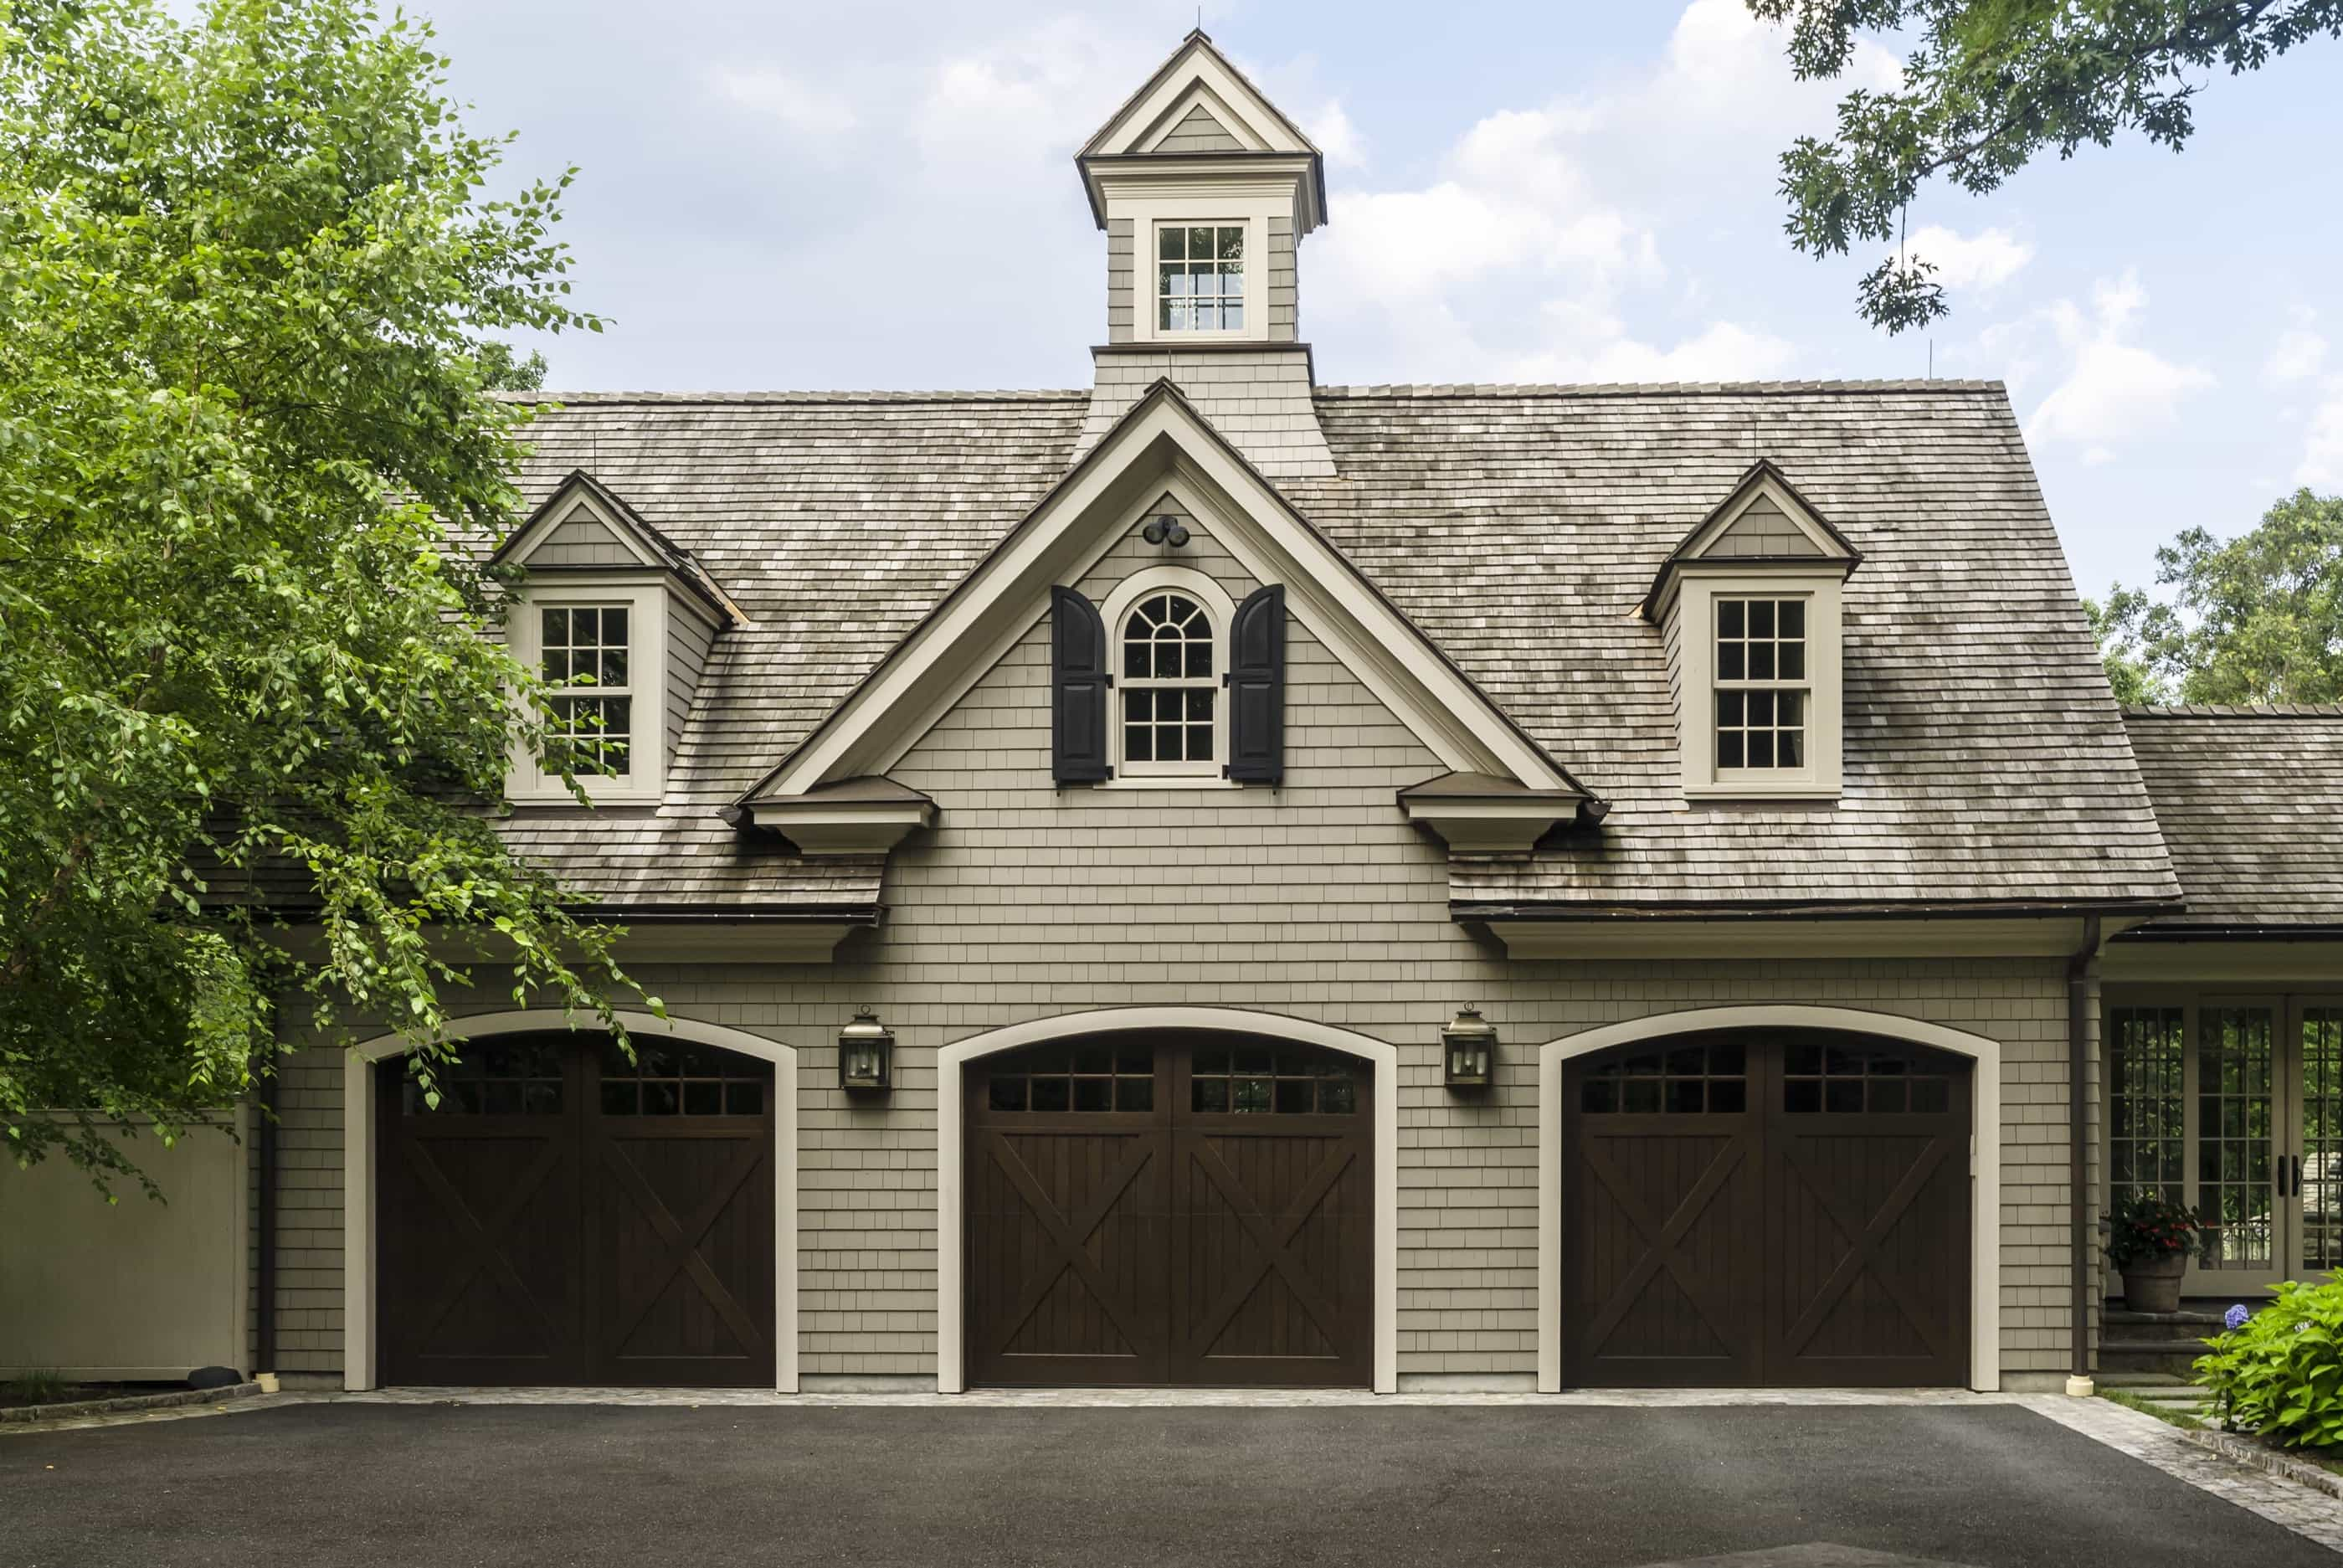 Featured Image of Three Car Garage At Colonial Home